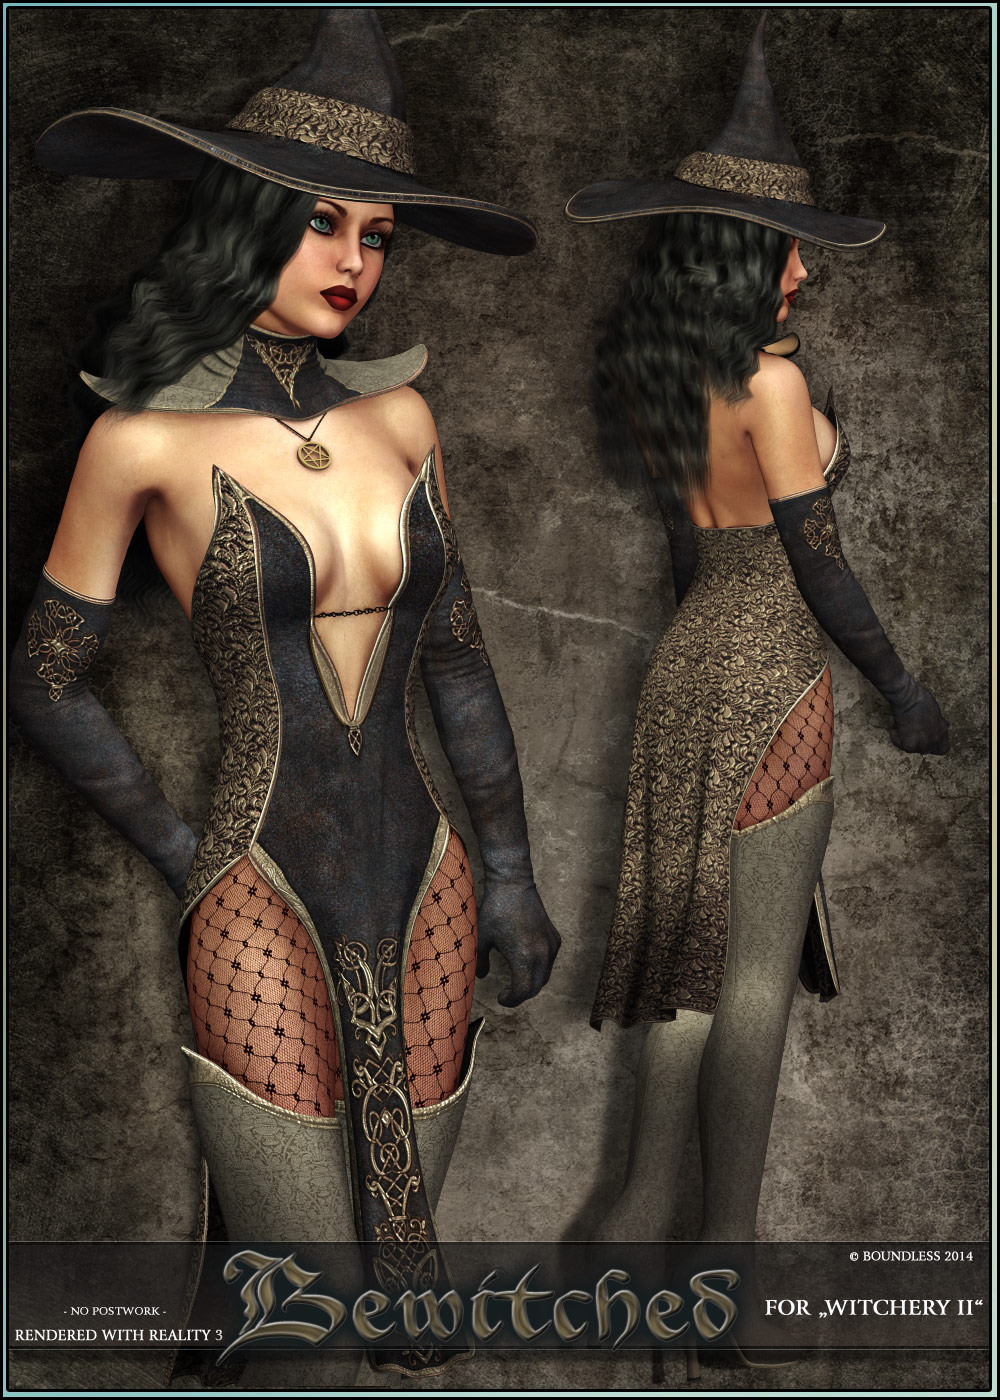 Bewitched for Witchery II